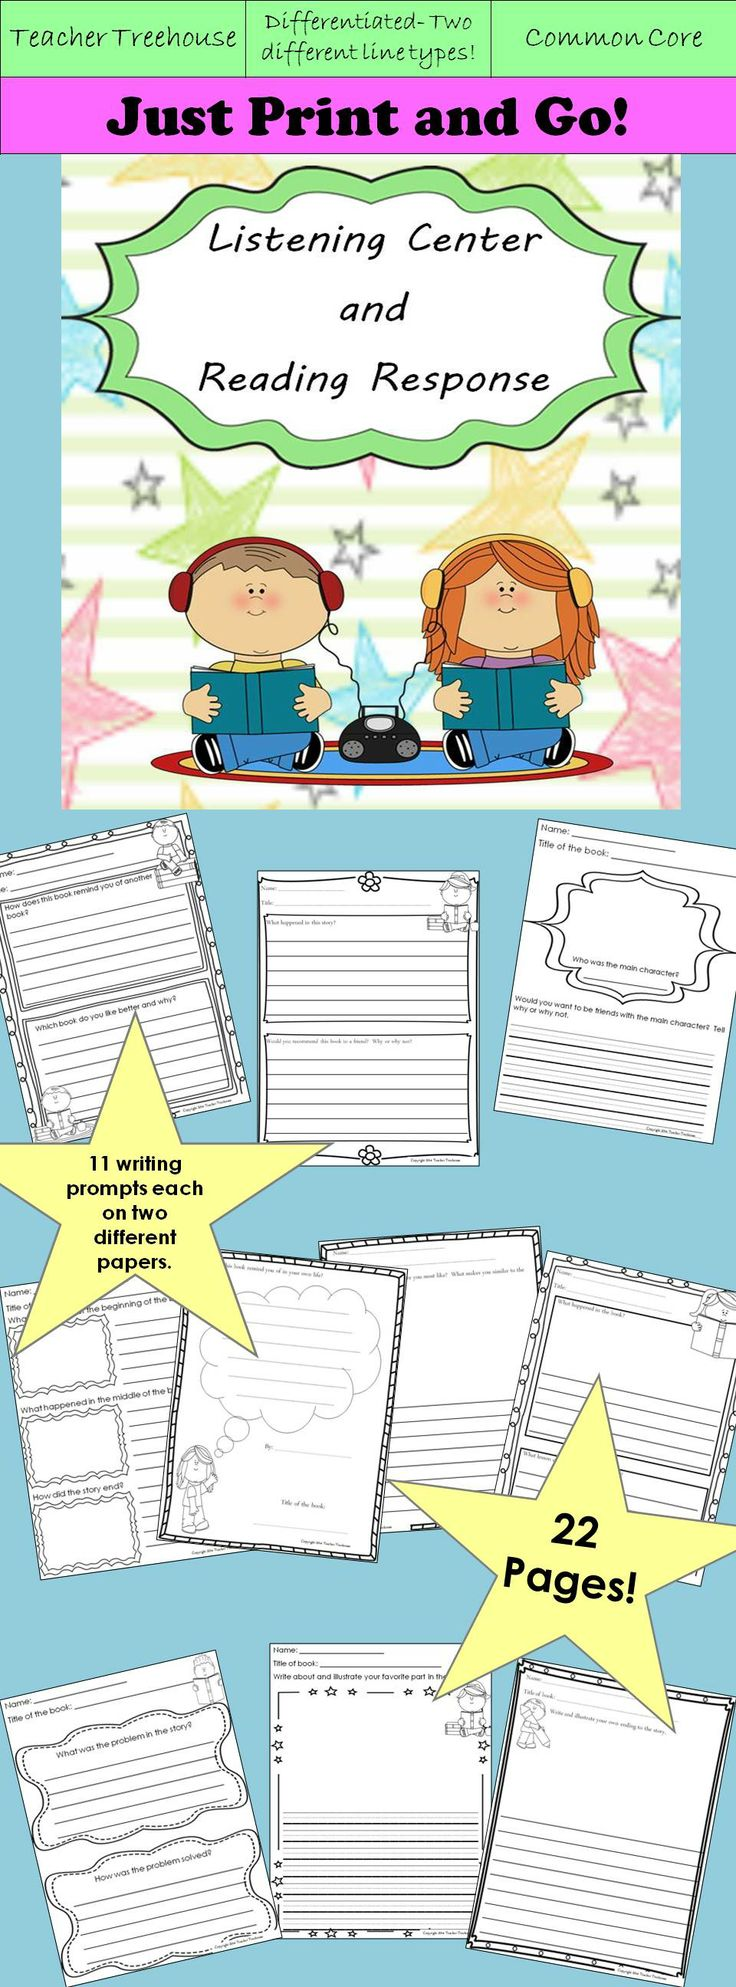 2 sets of 11 worksheets (22 worksheets in all) Use to hold students accountable at the listening center, book corner, and for reading homework. The two sets are identical, except that one set uses handwriting lines and the other set uses regular lines that are slightly closer together. Questions and prompts are for character, setting, plot, problem/solution, favorite part, write your own ending, lesson learned, authors purpose, text to self connection, and text to text connection.